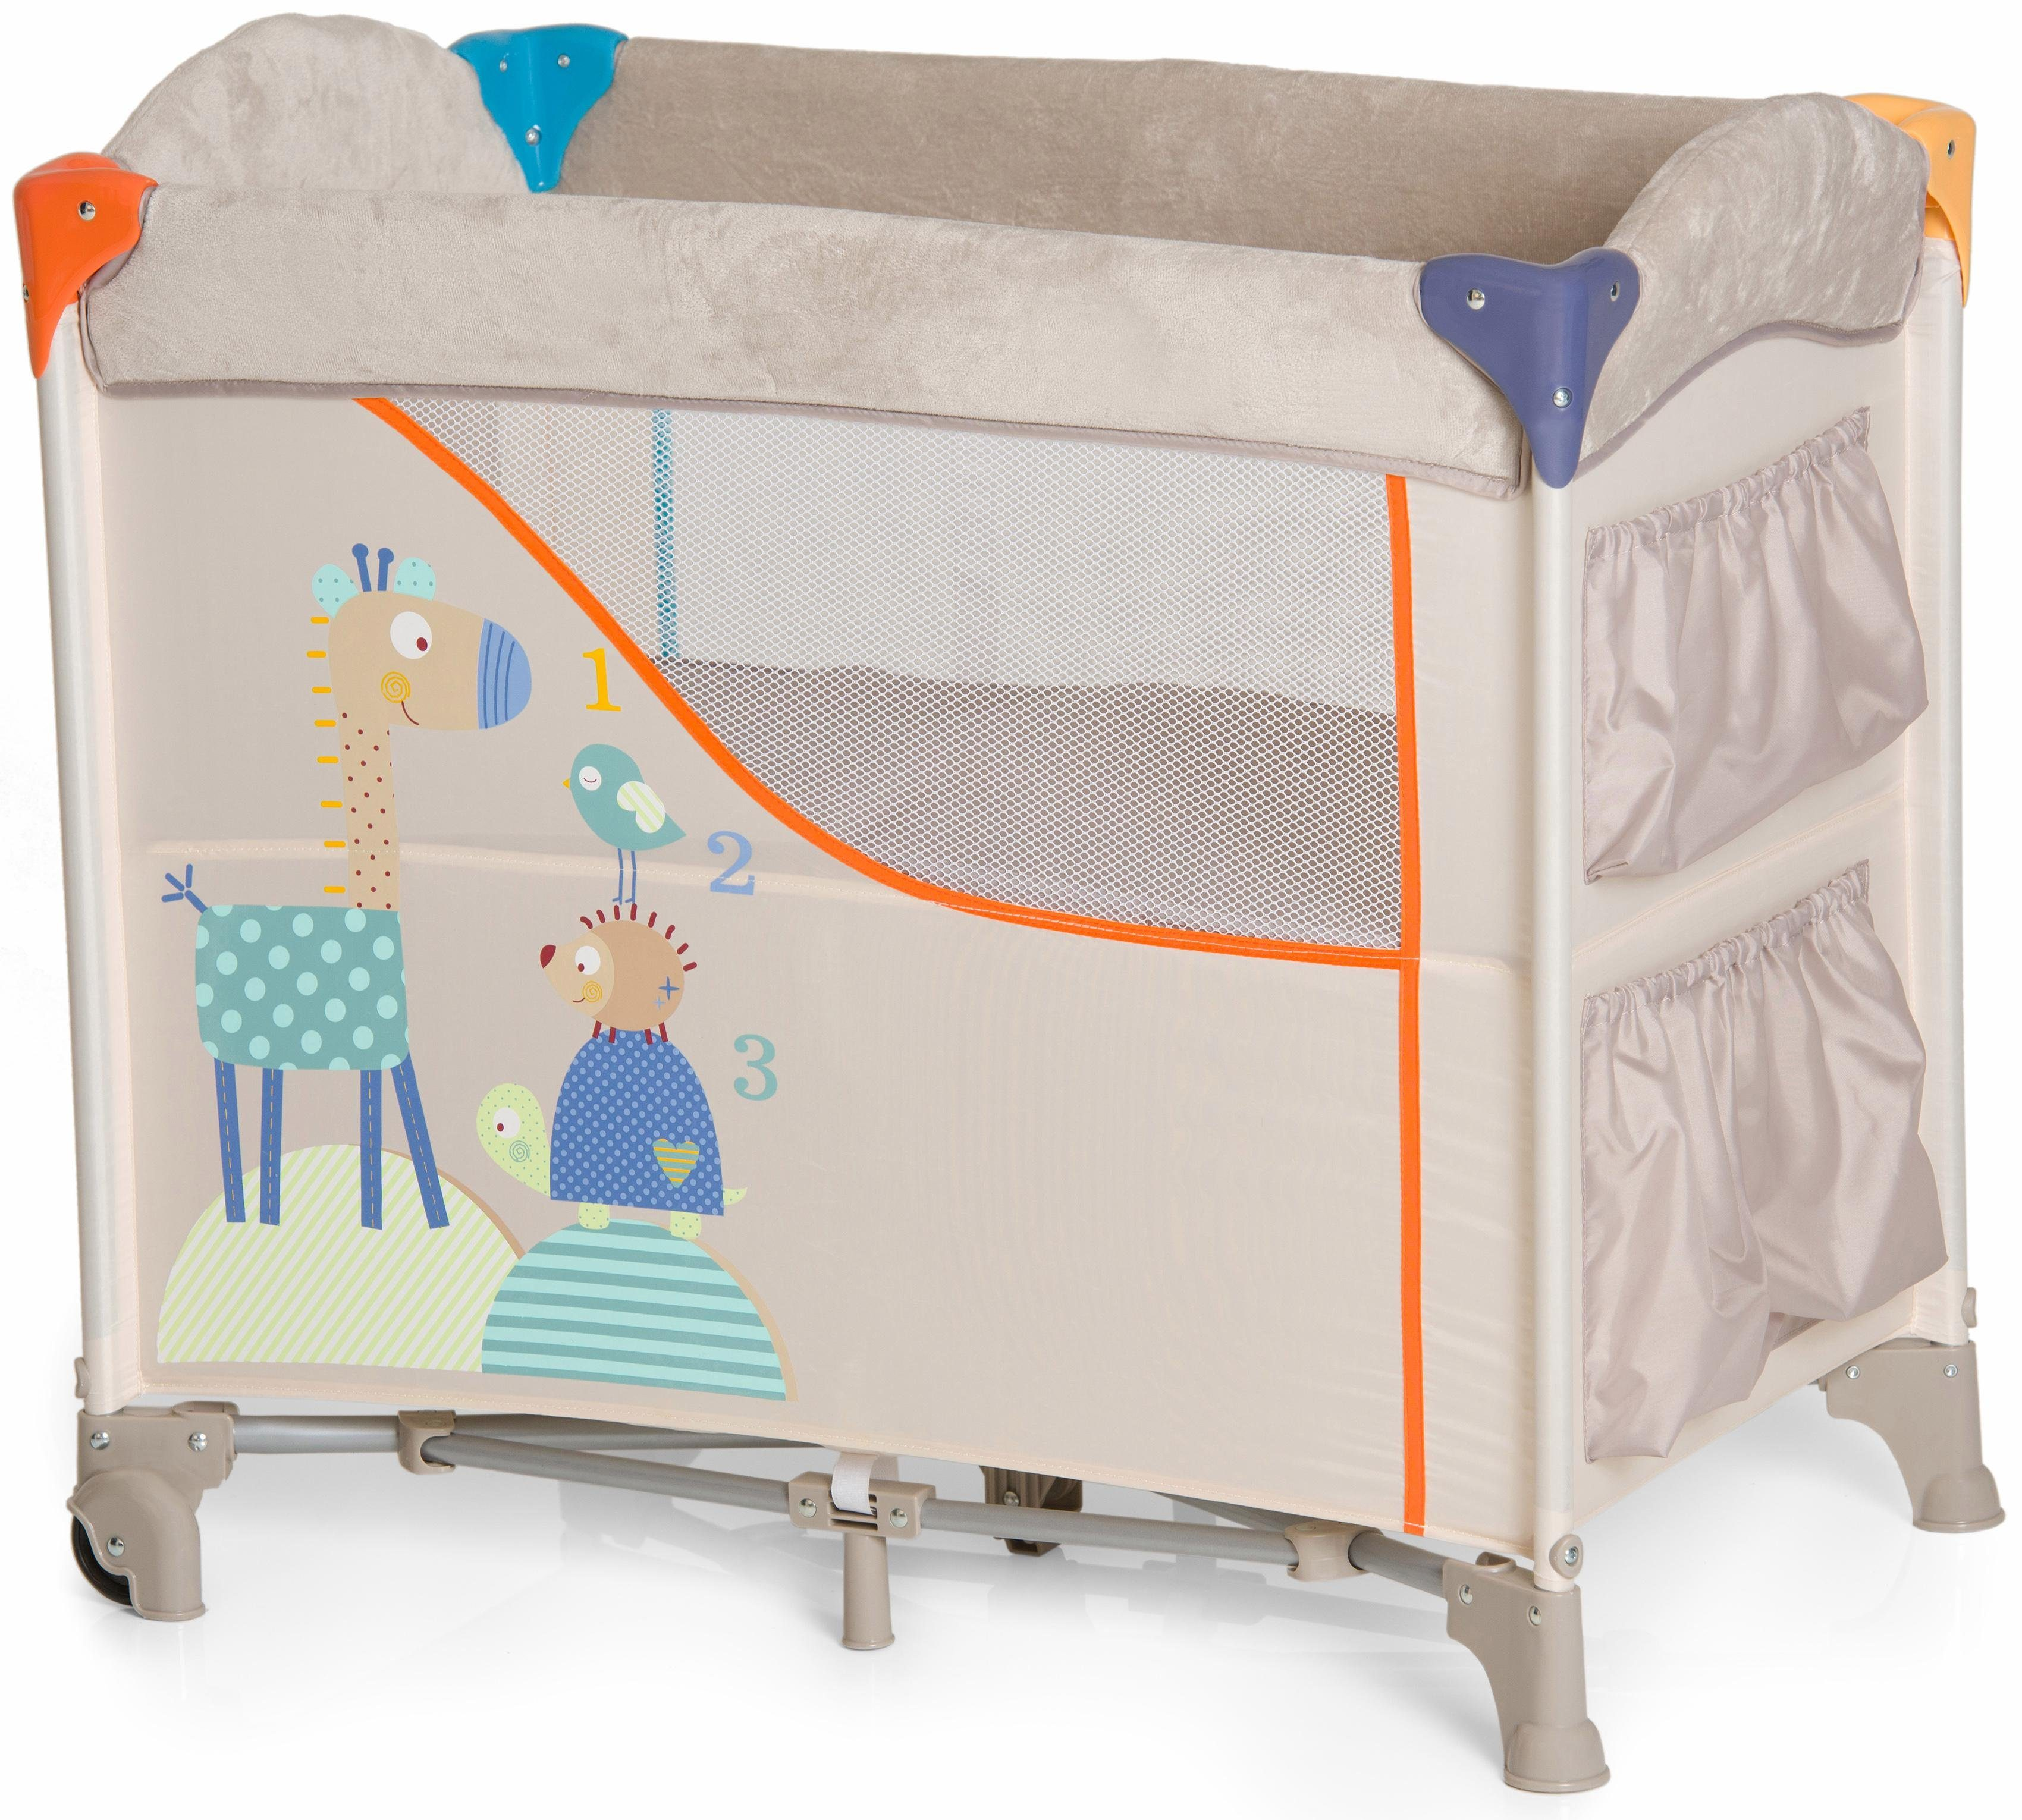 hauck FUN FOR KIDS Beistellbett mit Tragetasche, »Sleep'n Care Animals«